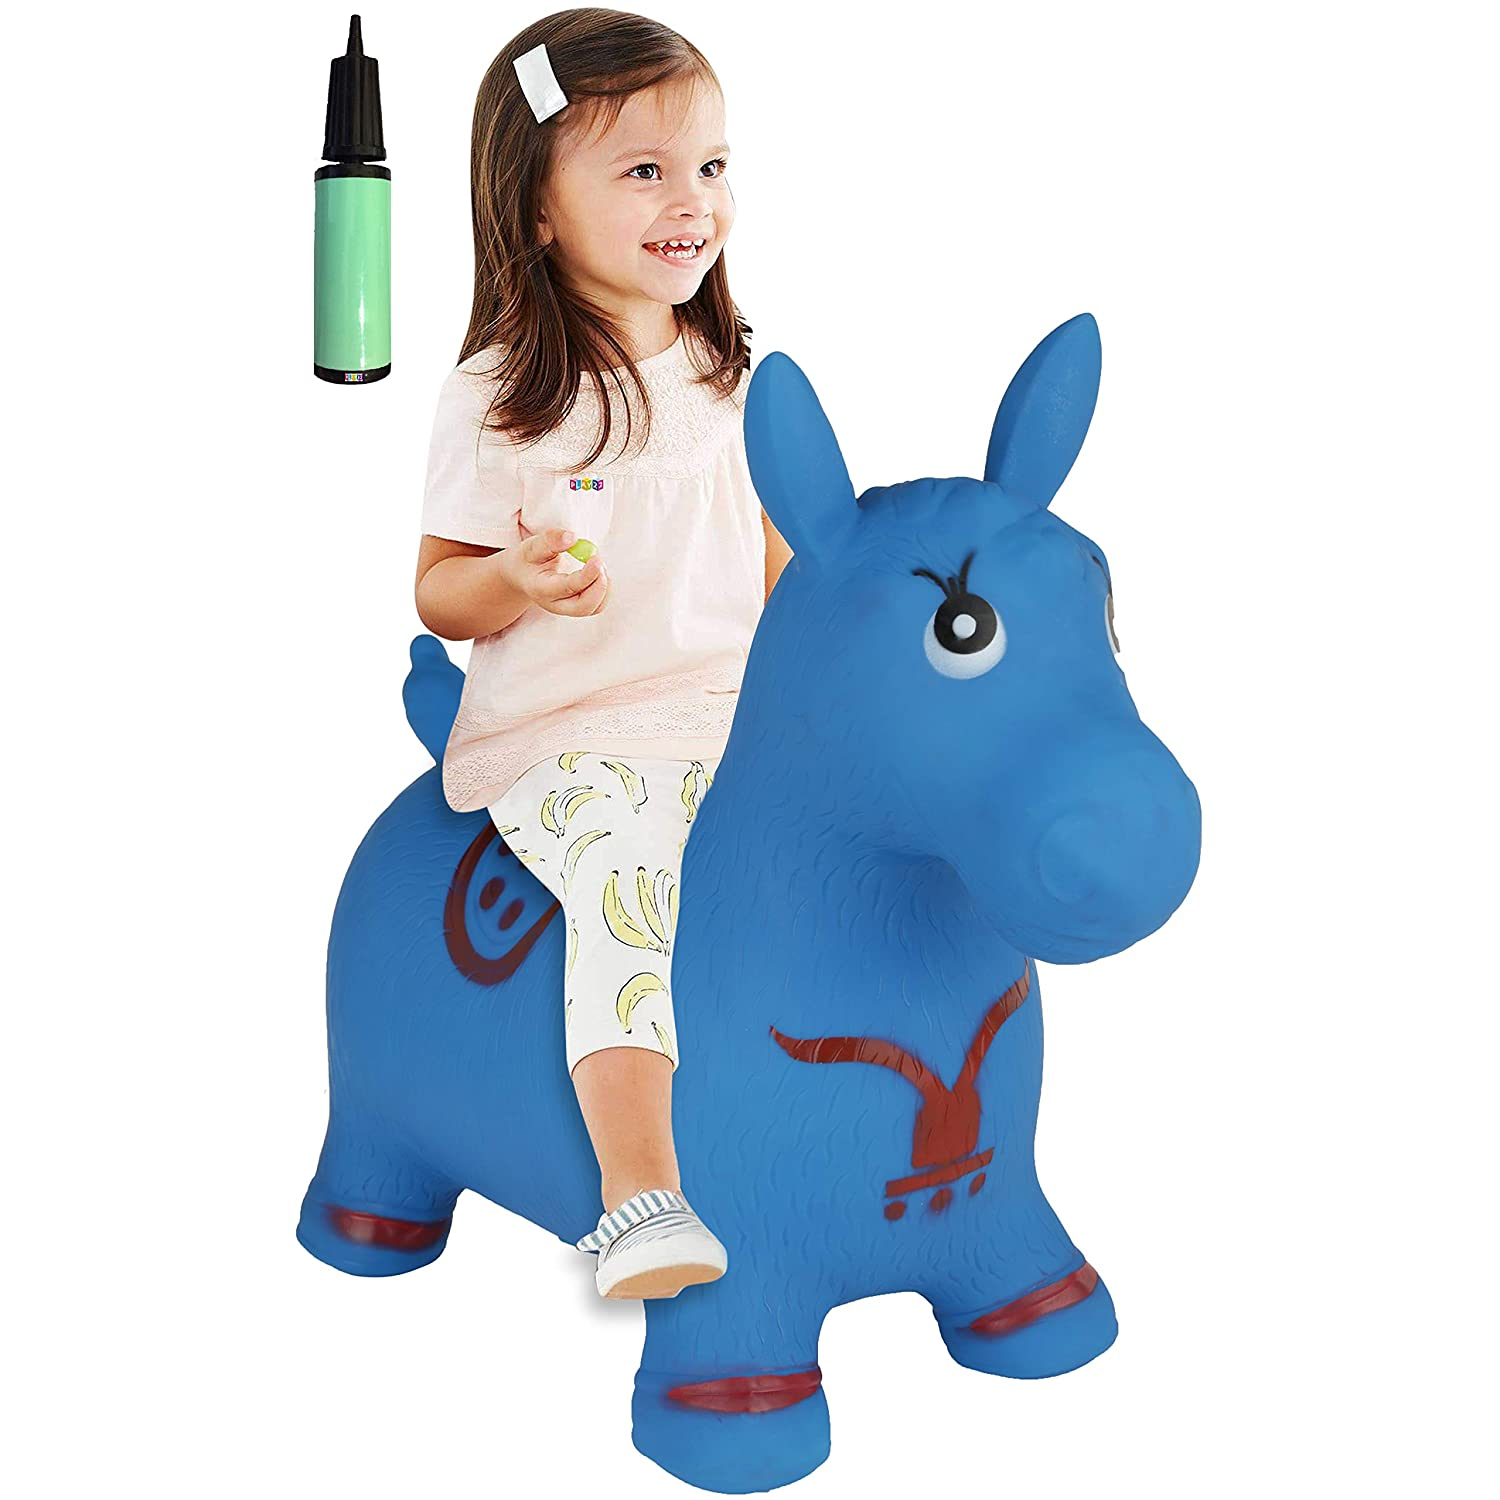 Horse Hopper BLUE Inflatable Horse Bouncer with Pump Included Bouncy Horse Toys For Kids Toddler Riding Horse Toy Great For Indoor And Outdoor Toys Play Best Gift for Boys and Girls Original